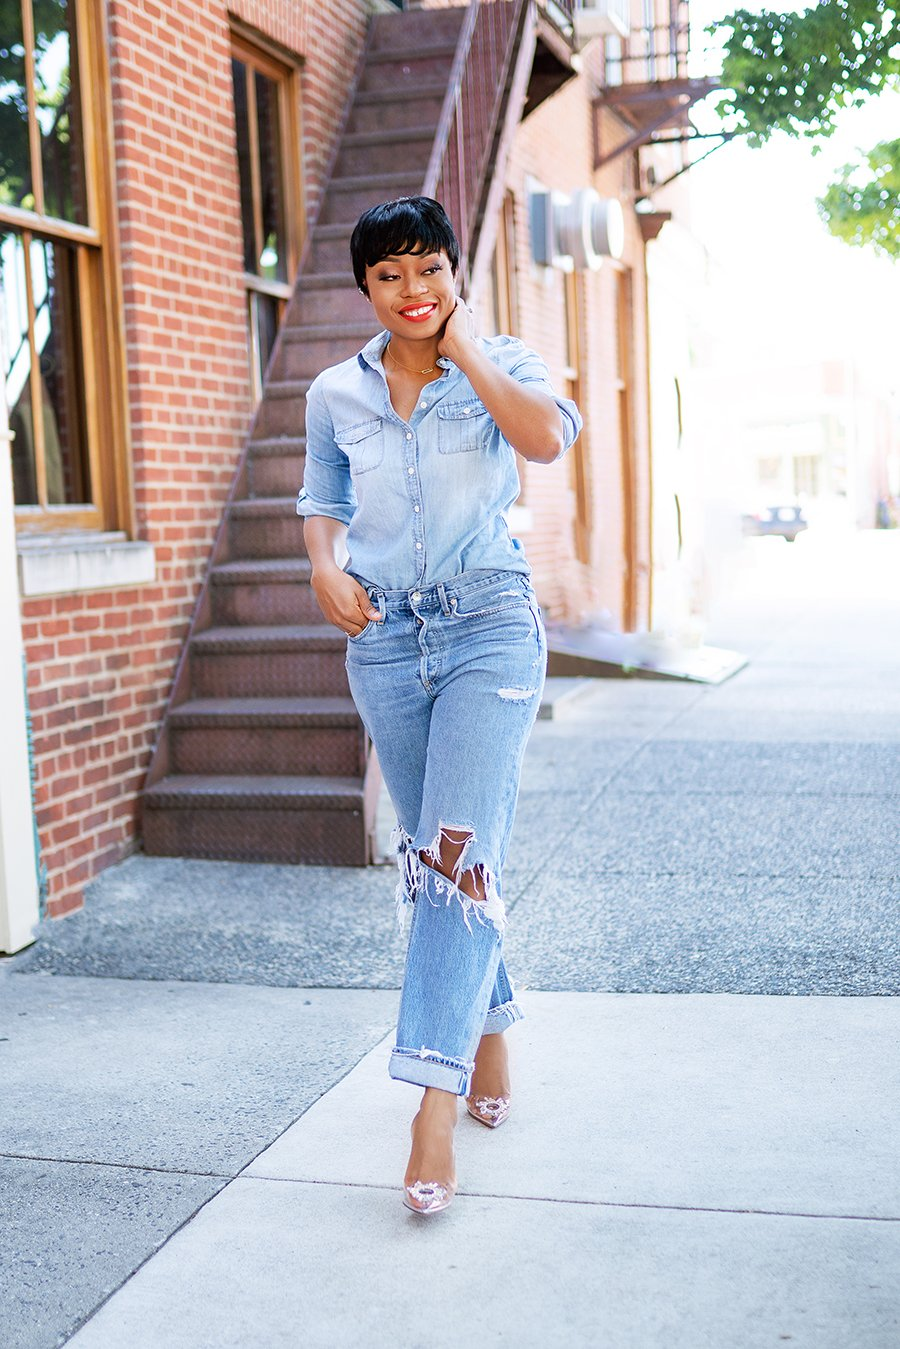 stella-adewunmi-of-jadore-fashion-blog-shares-casual-jeans-fells-point